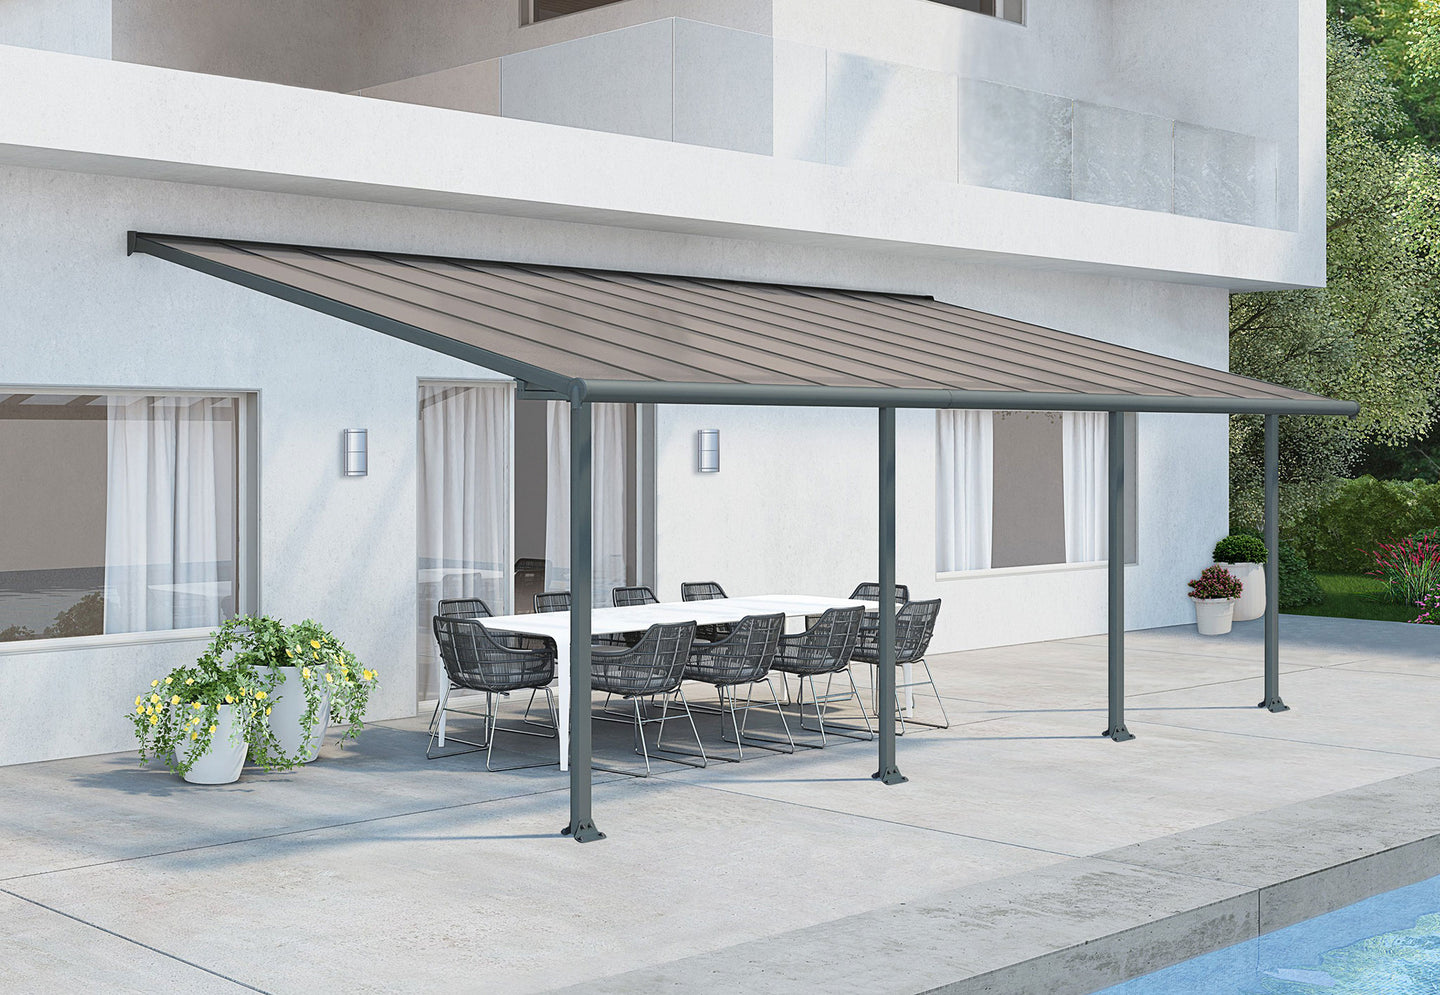 Palram Olympia 10' x 24' Patio Cover - Gray/Bronze